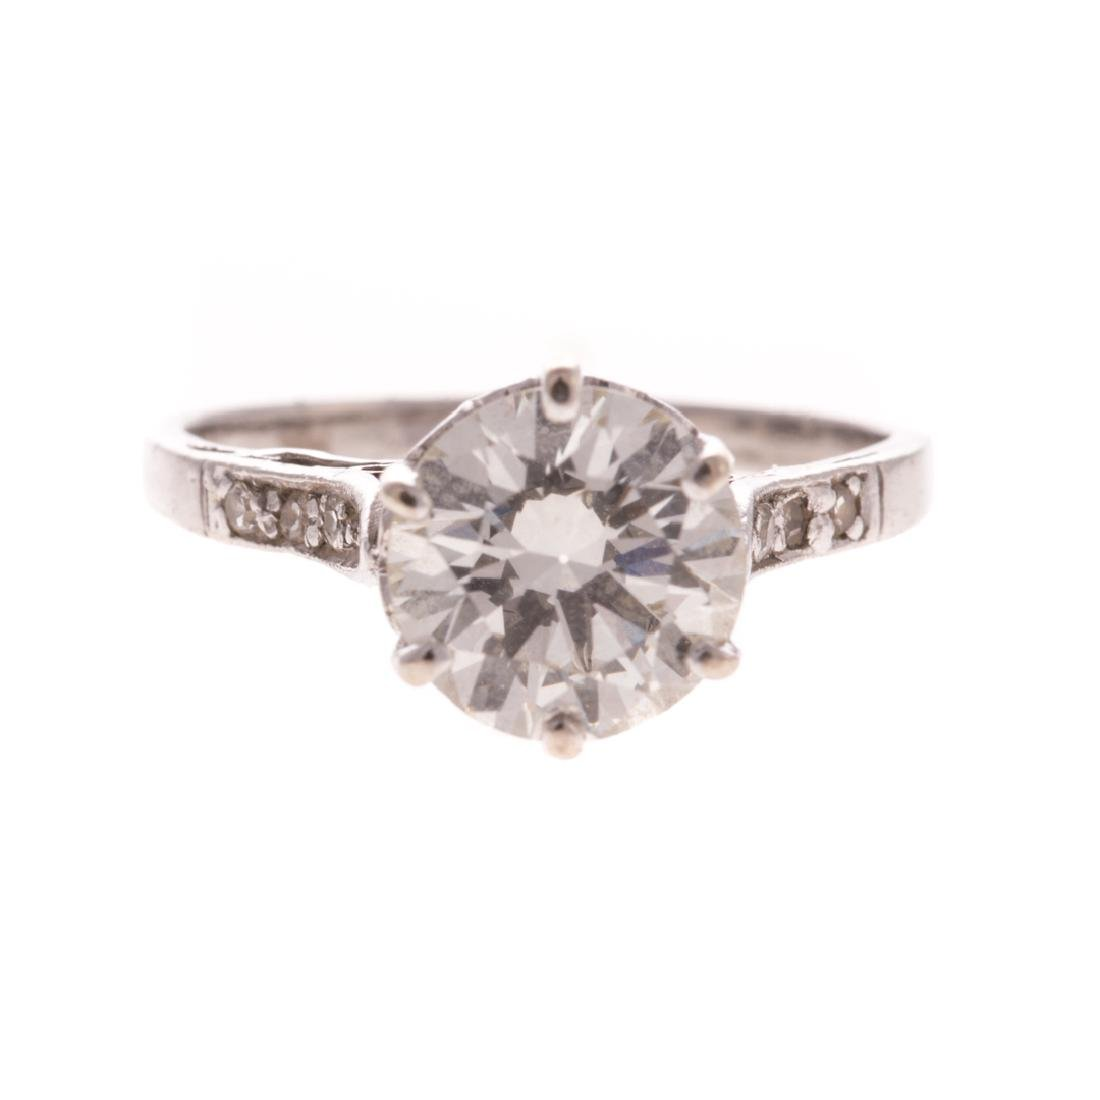 A Lady's 1.75 ct Diamond Solitaire Ring